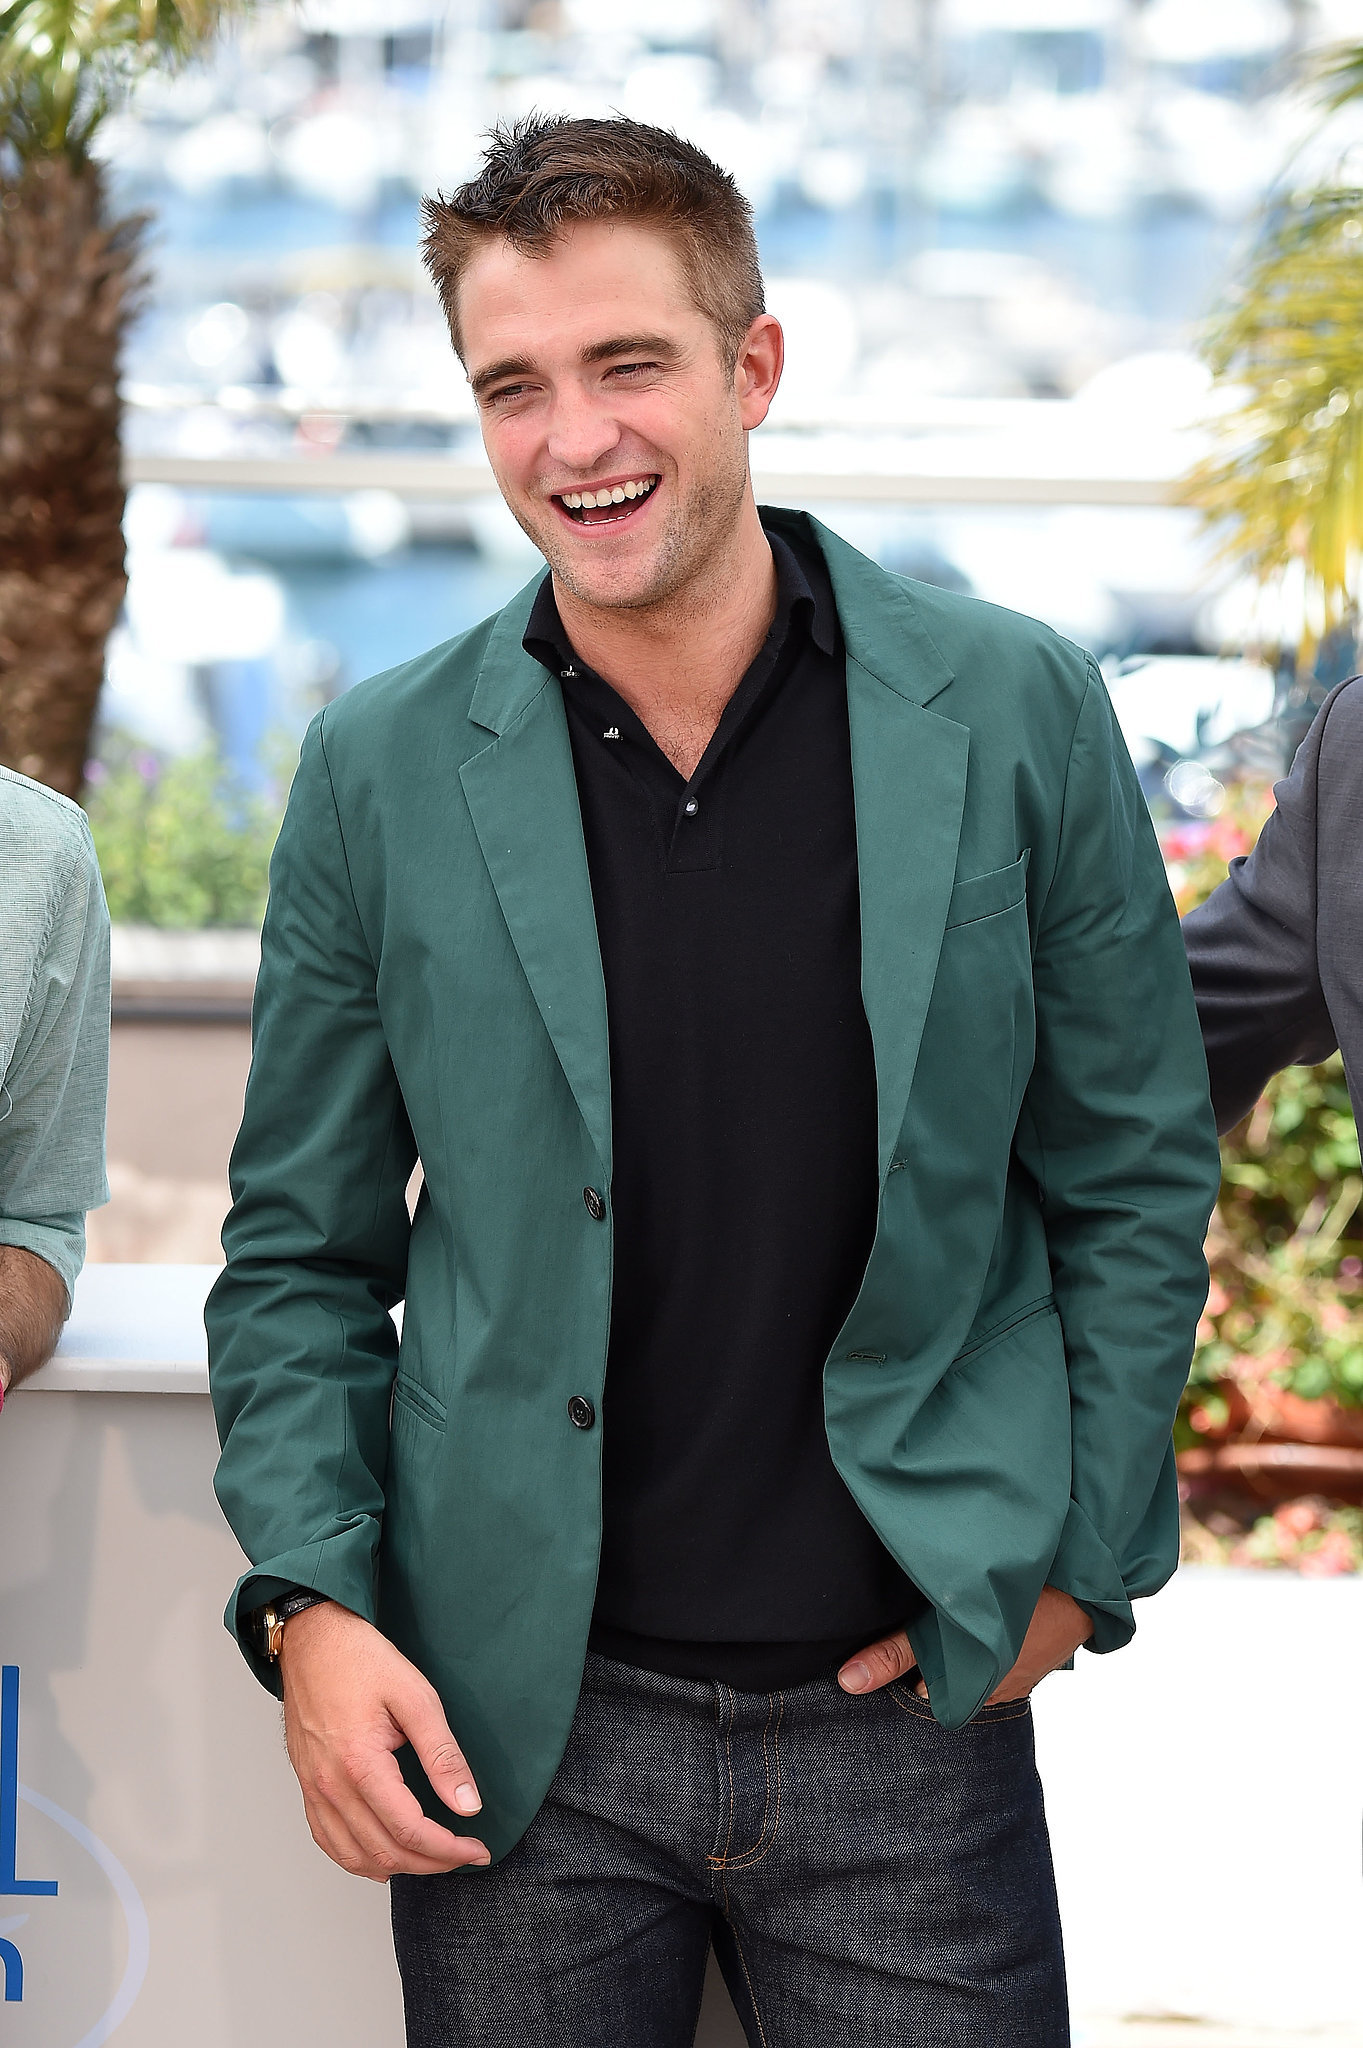 Brace Yourself For Robert Pattinson's Hottest Pictures at Cannes